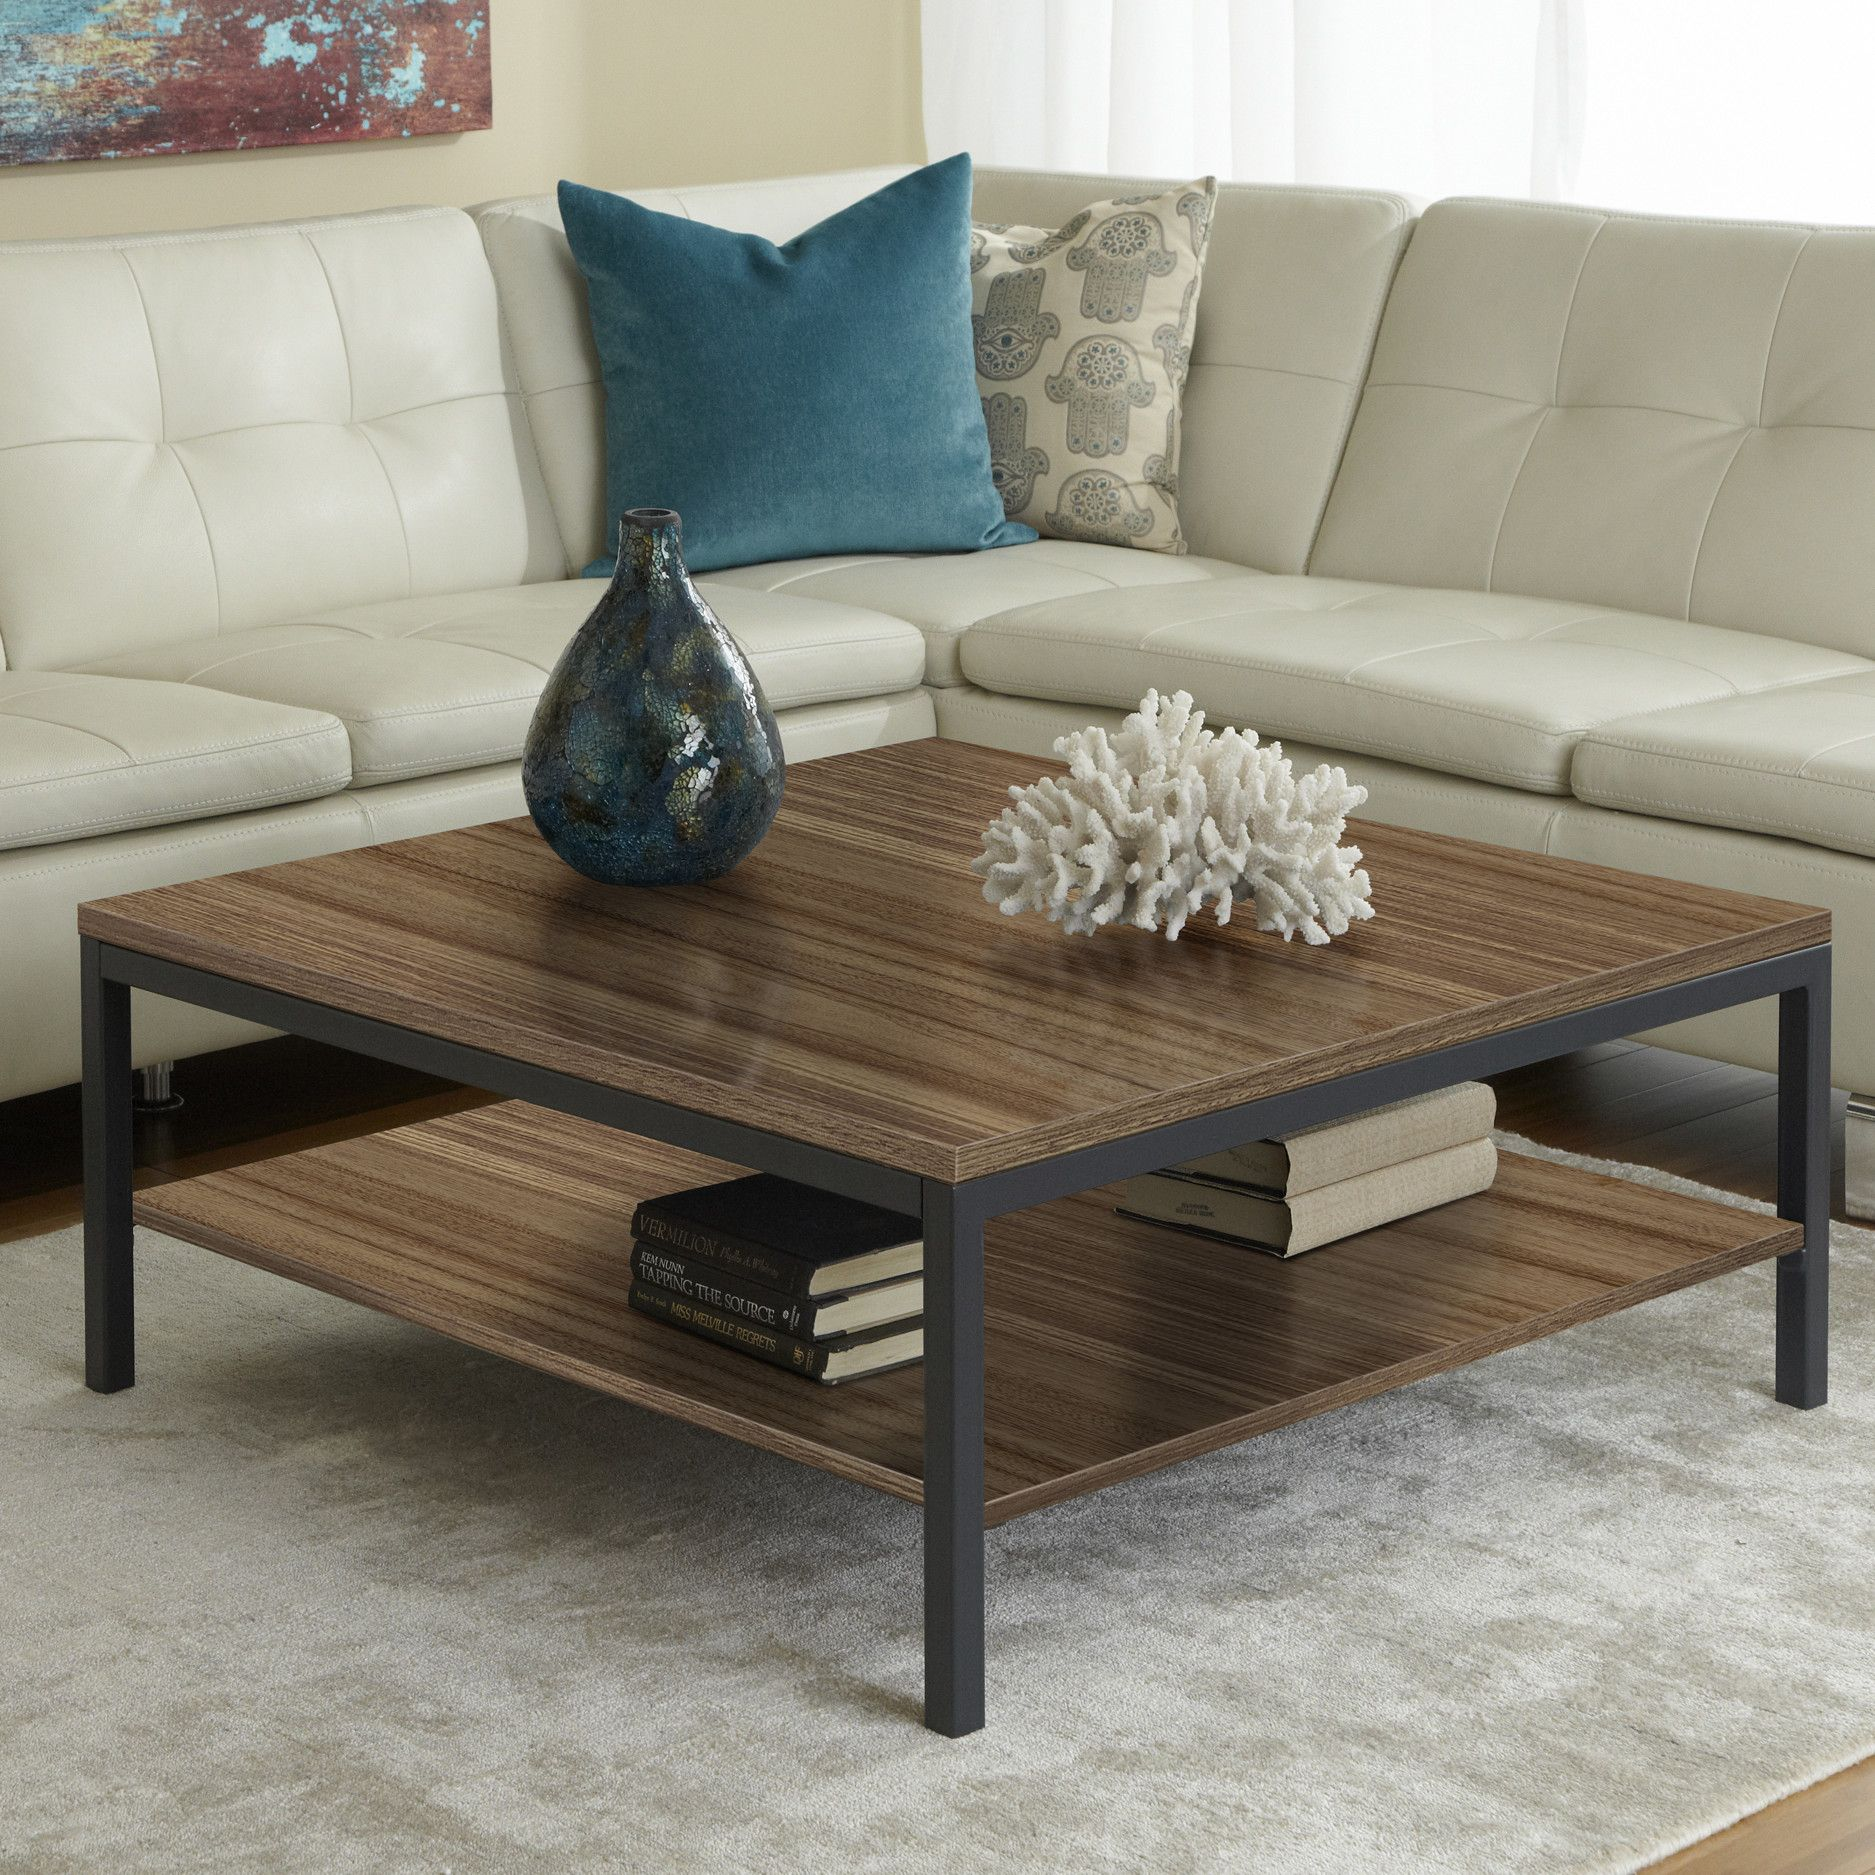 Jesper Office Parson Coffee Table With Shelf | AllModern $299